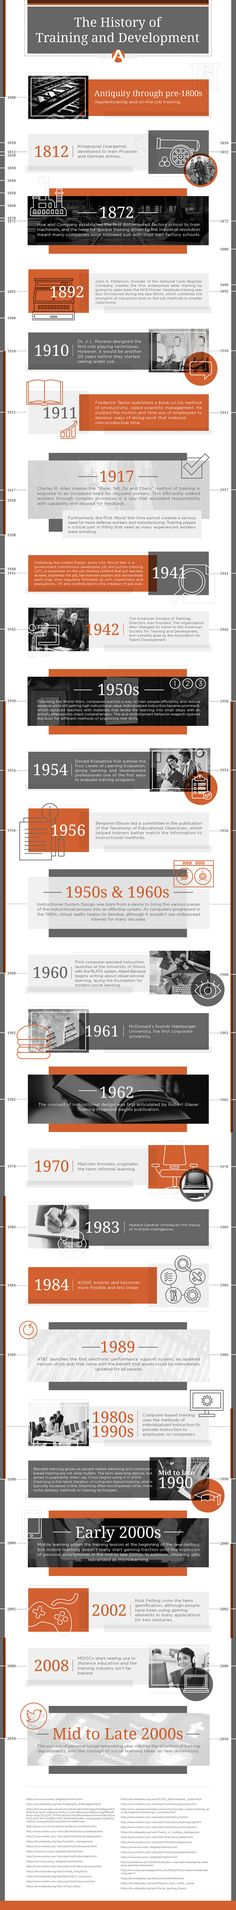 The History of Training and Development Infographic - http://elearninginfographics.com/history-training-development-infographic/